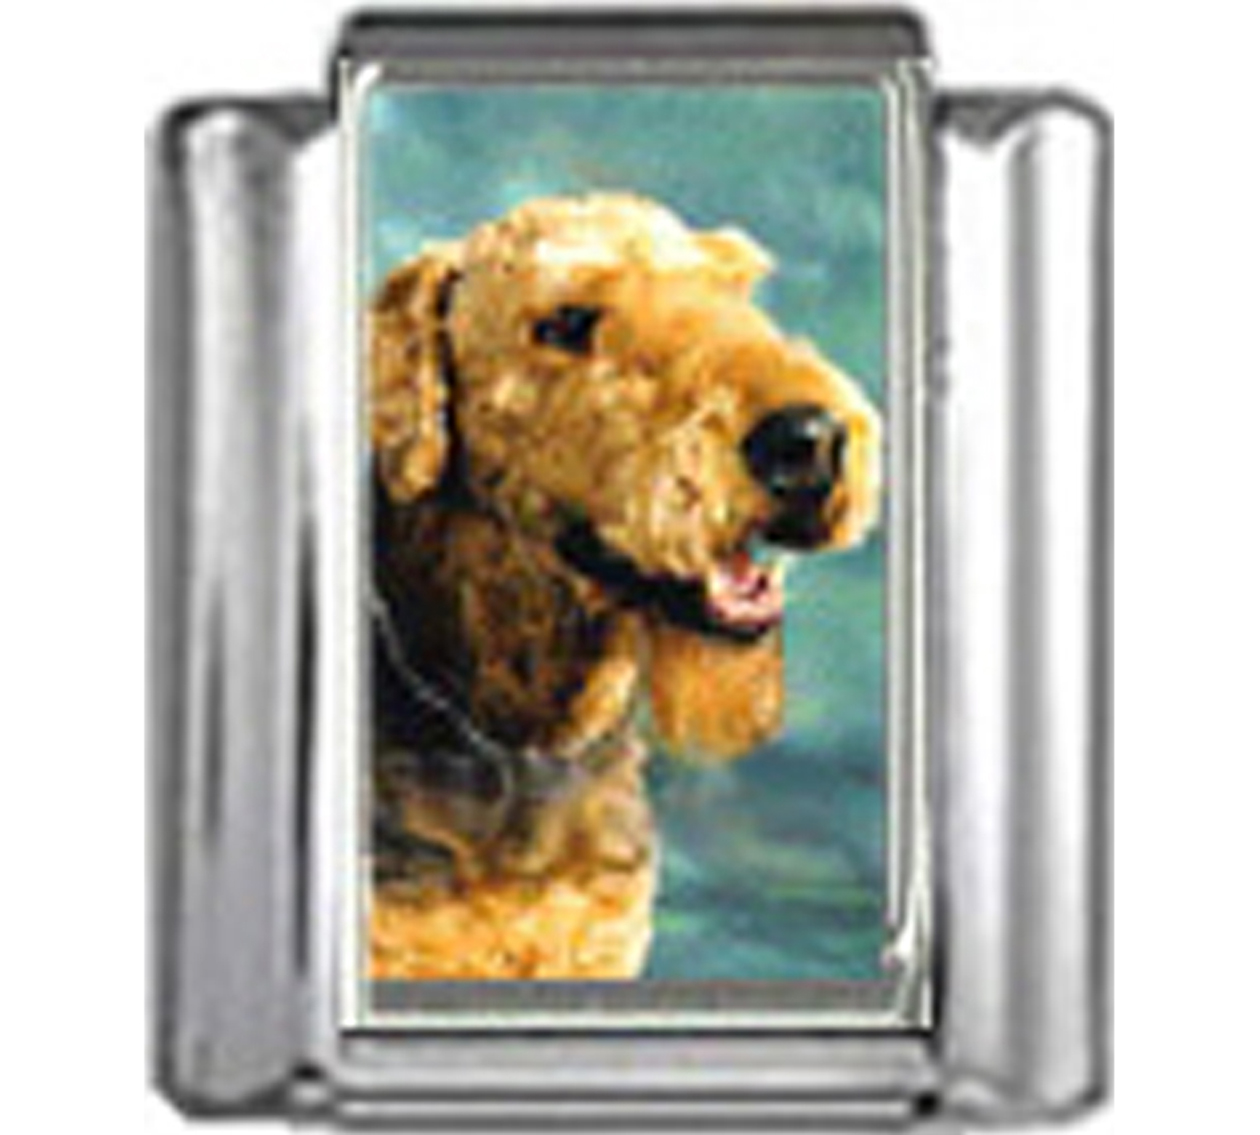 DG024-Airedale-Terrier-Dog-3